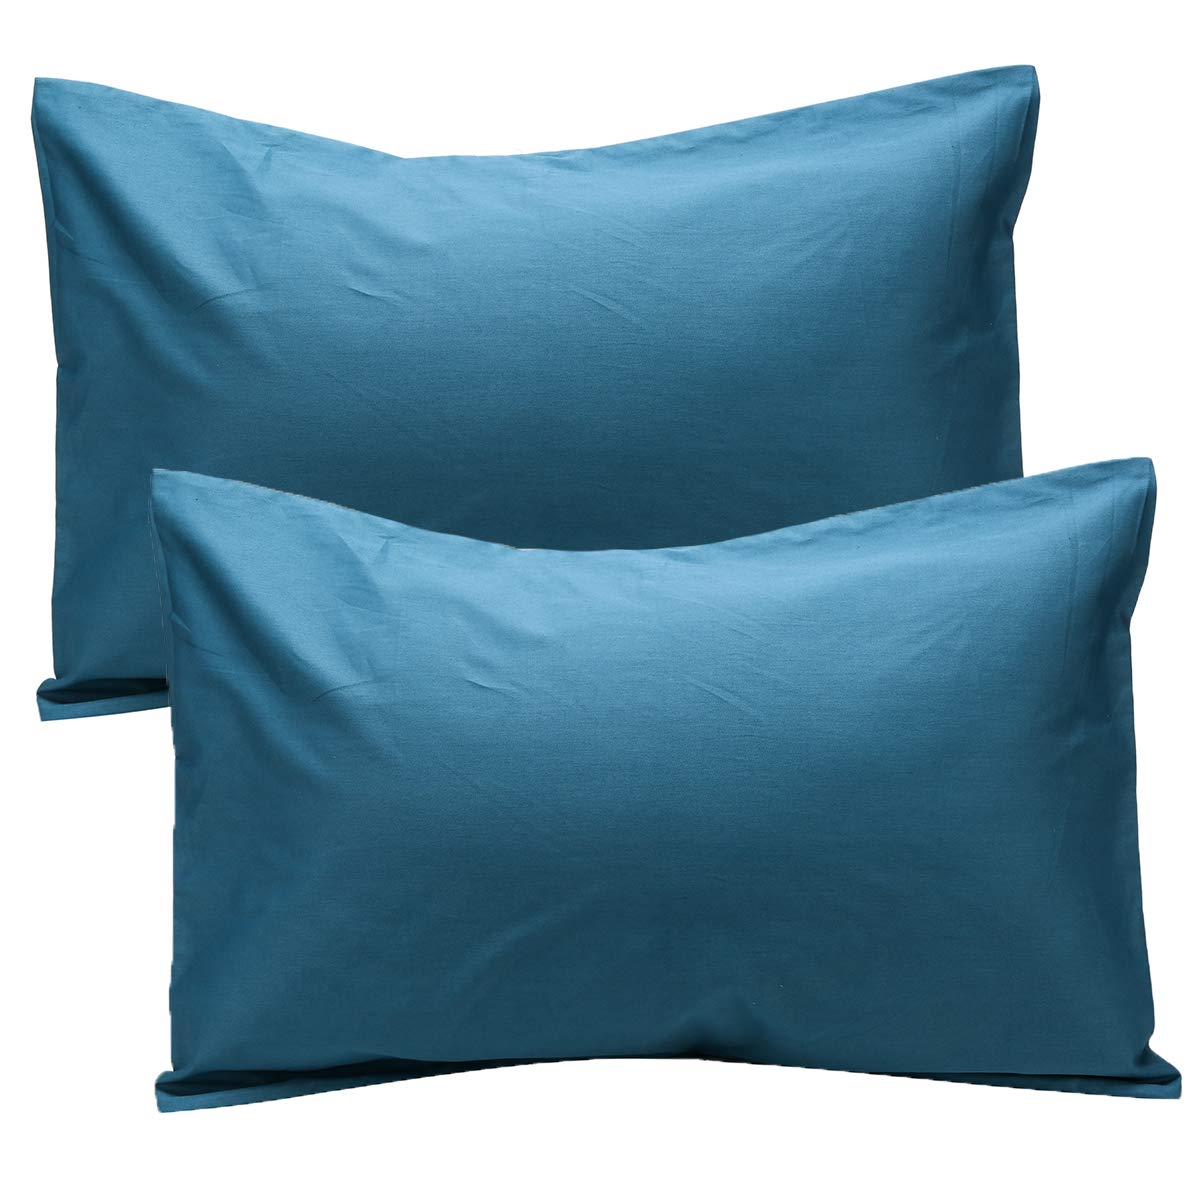 Kids Toddler Pillowcases UOMNY 2 Pack 100/% Cotton Pillow Caver Pillowslip Case Fits Pillows sizesd 13 x 18 or 12x 16 for Kids Bedding Pillow Cover Baby Pillow Cases Dog Blue